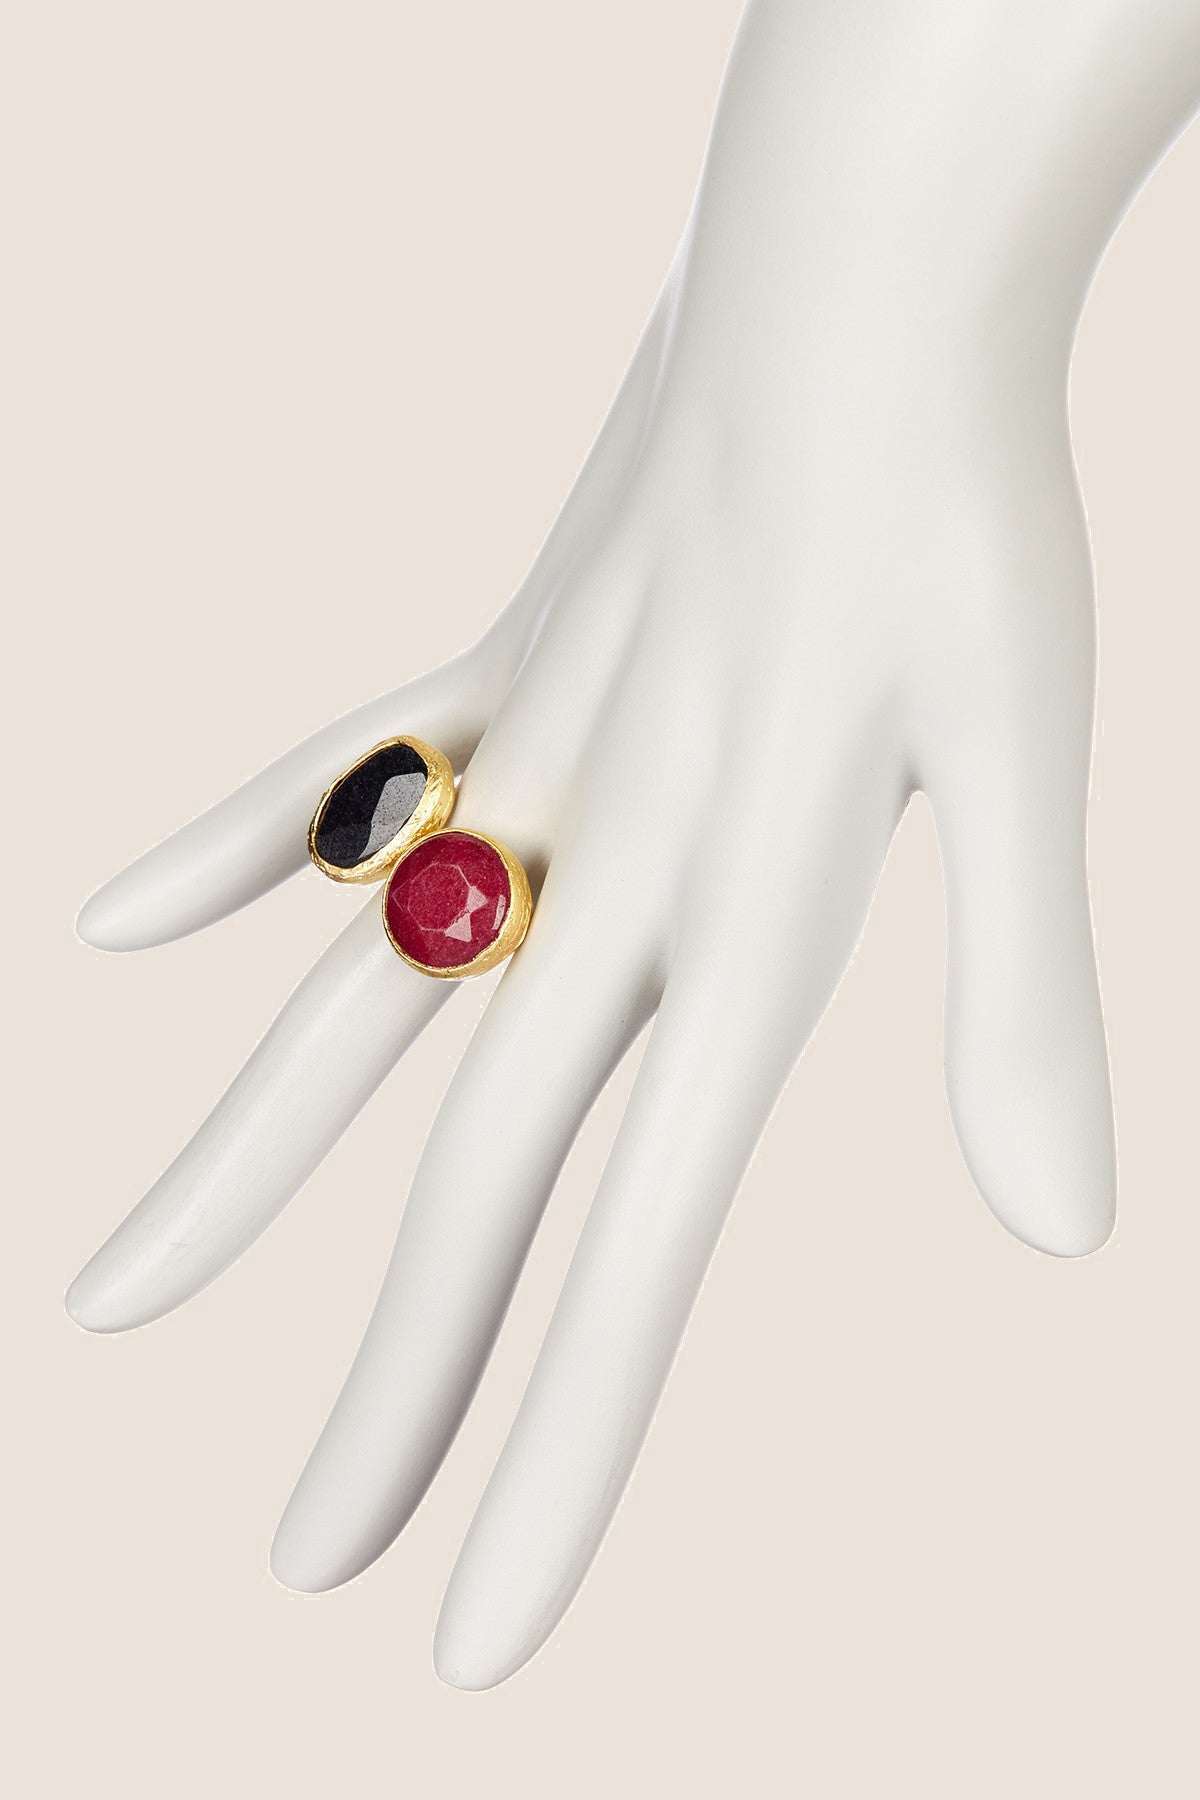 Double Cluster Ring- Ruby & Black Onyx